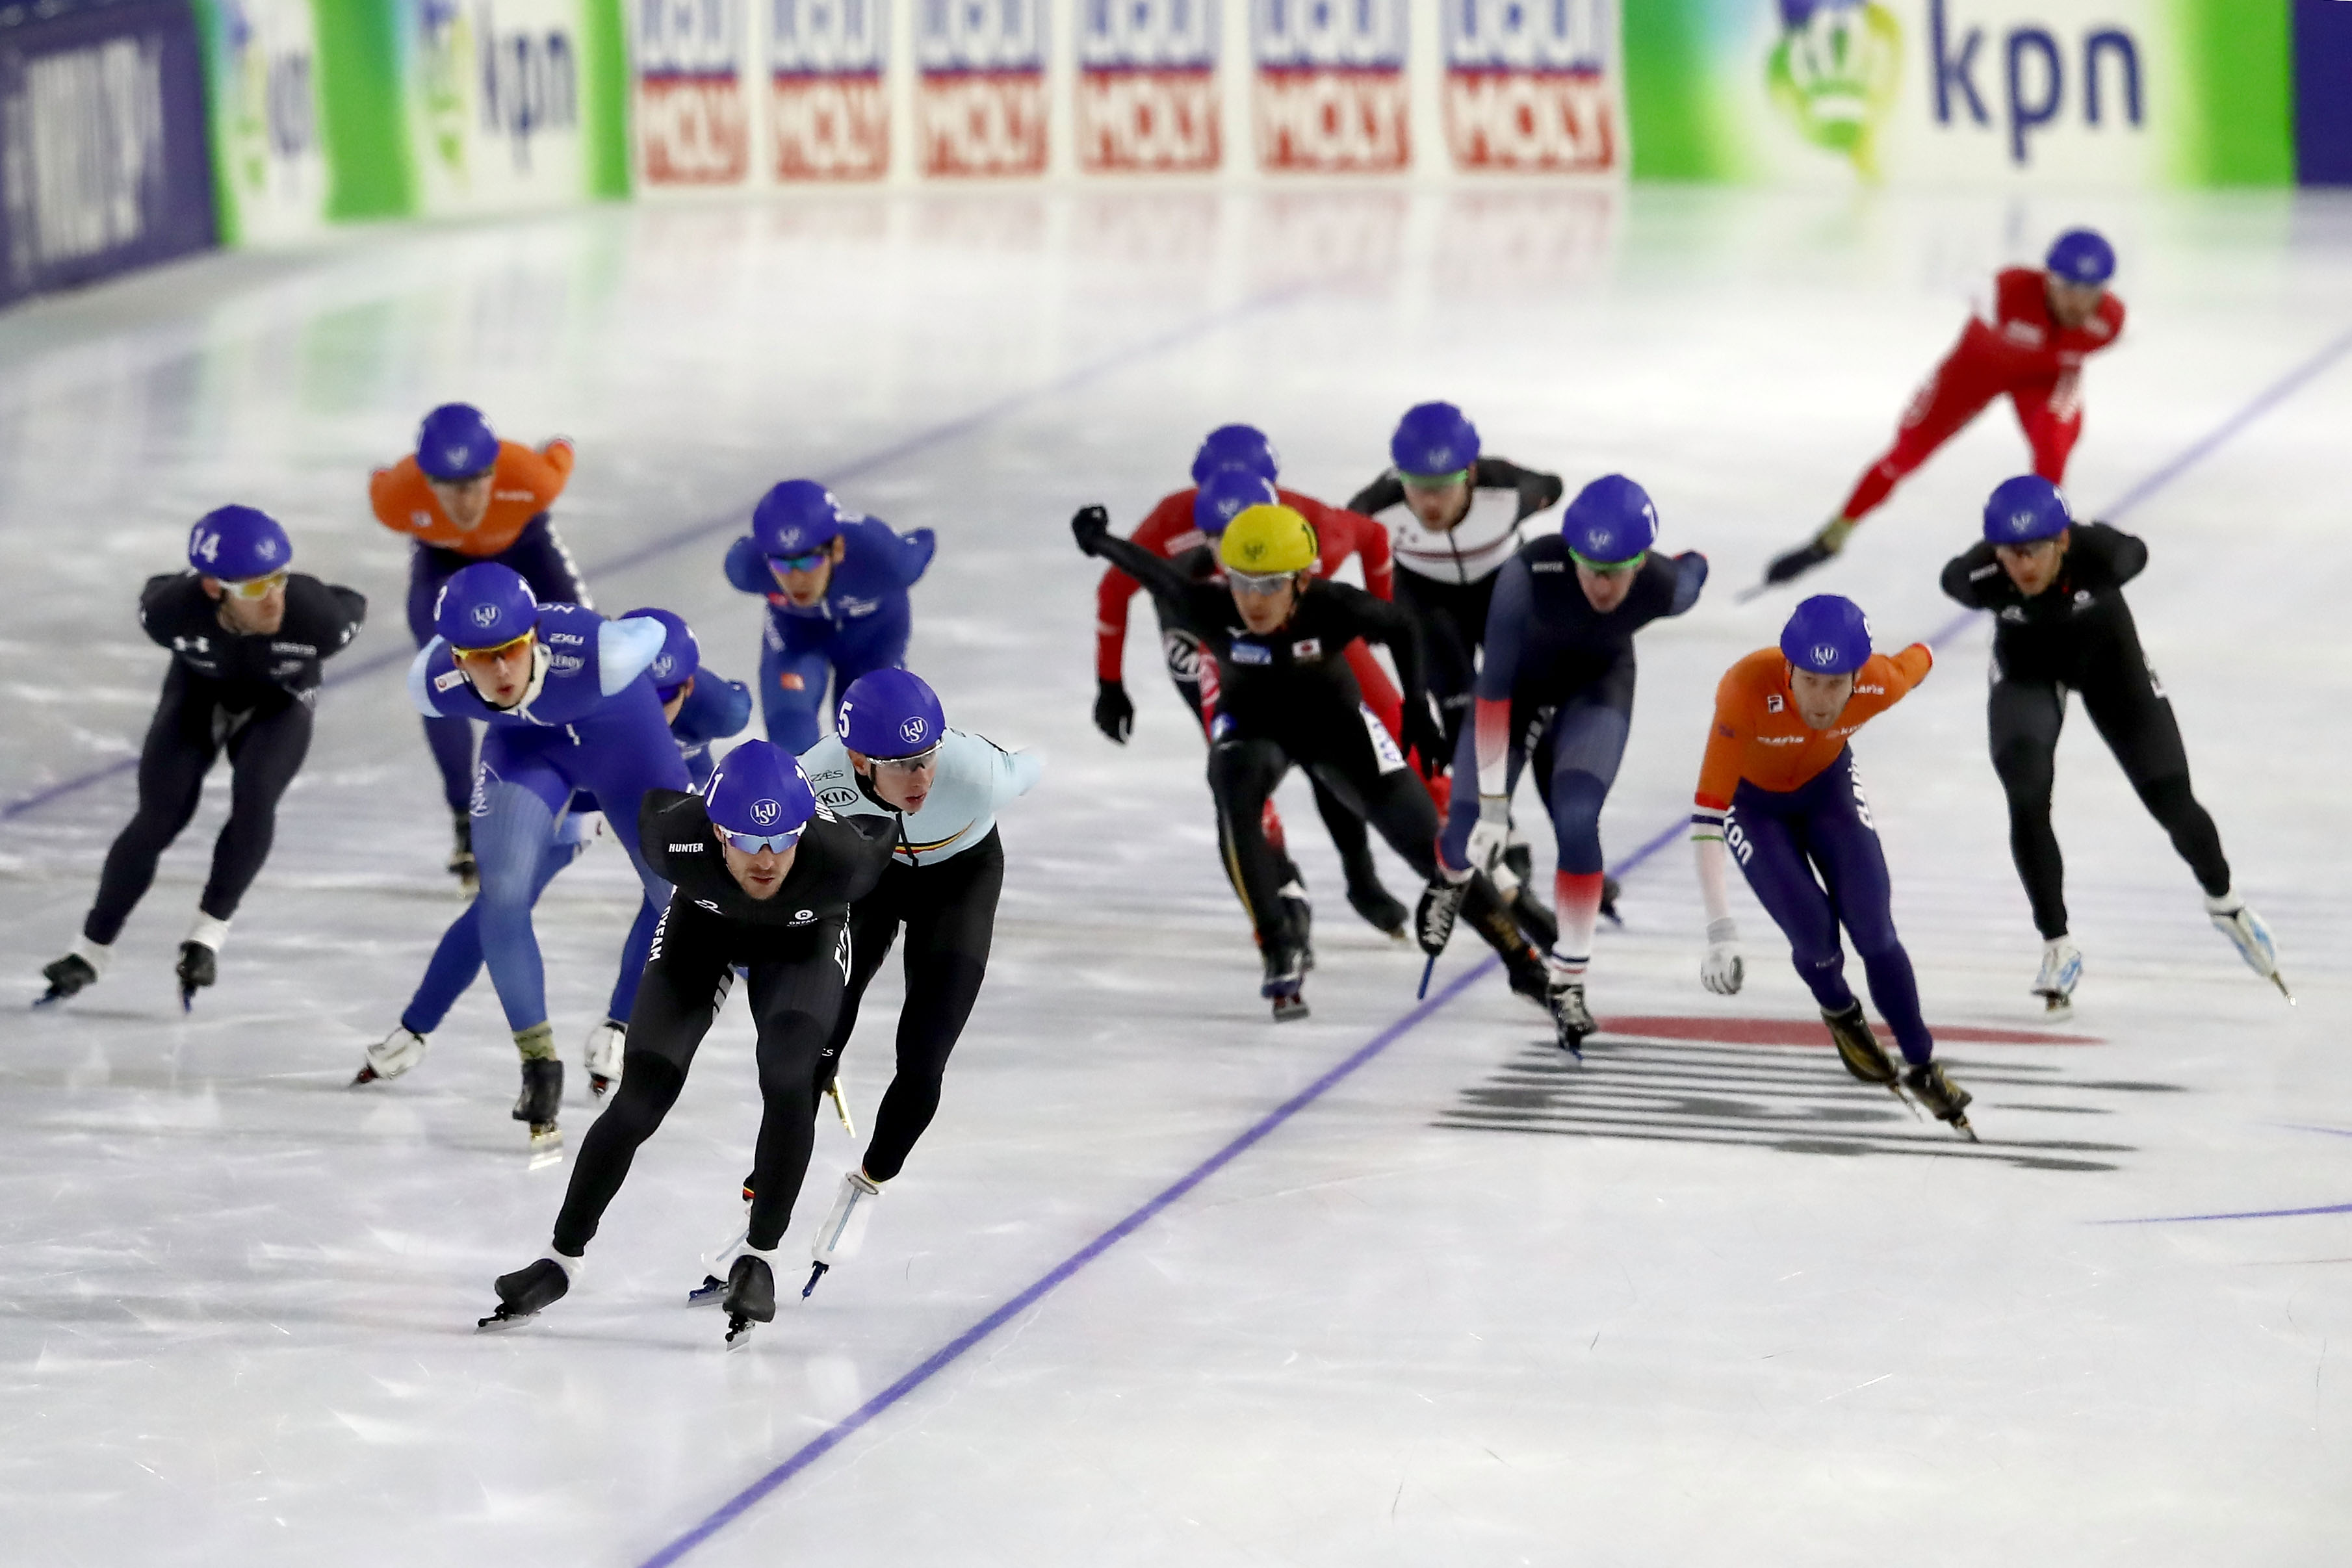 Skaters compete during the men mass start final on Day Two during the ISU World Cup Speed Skating at the Thialf on Nov. 11, 2017 in Heerenveen, Netherlands. Christof Koepsel - ISU—ISU via Getty Images